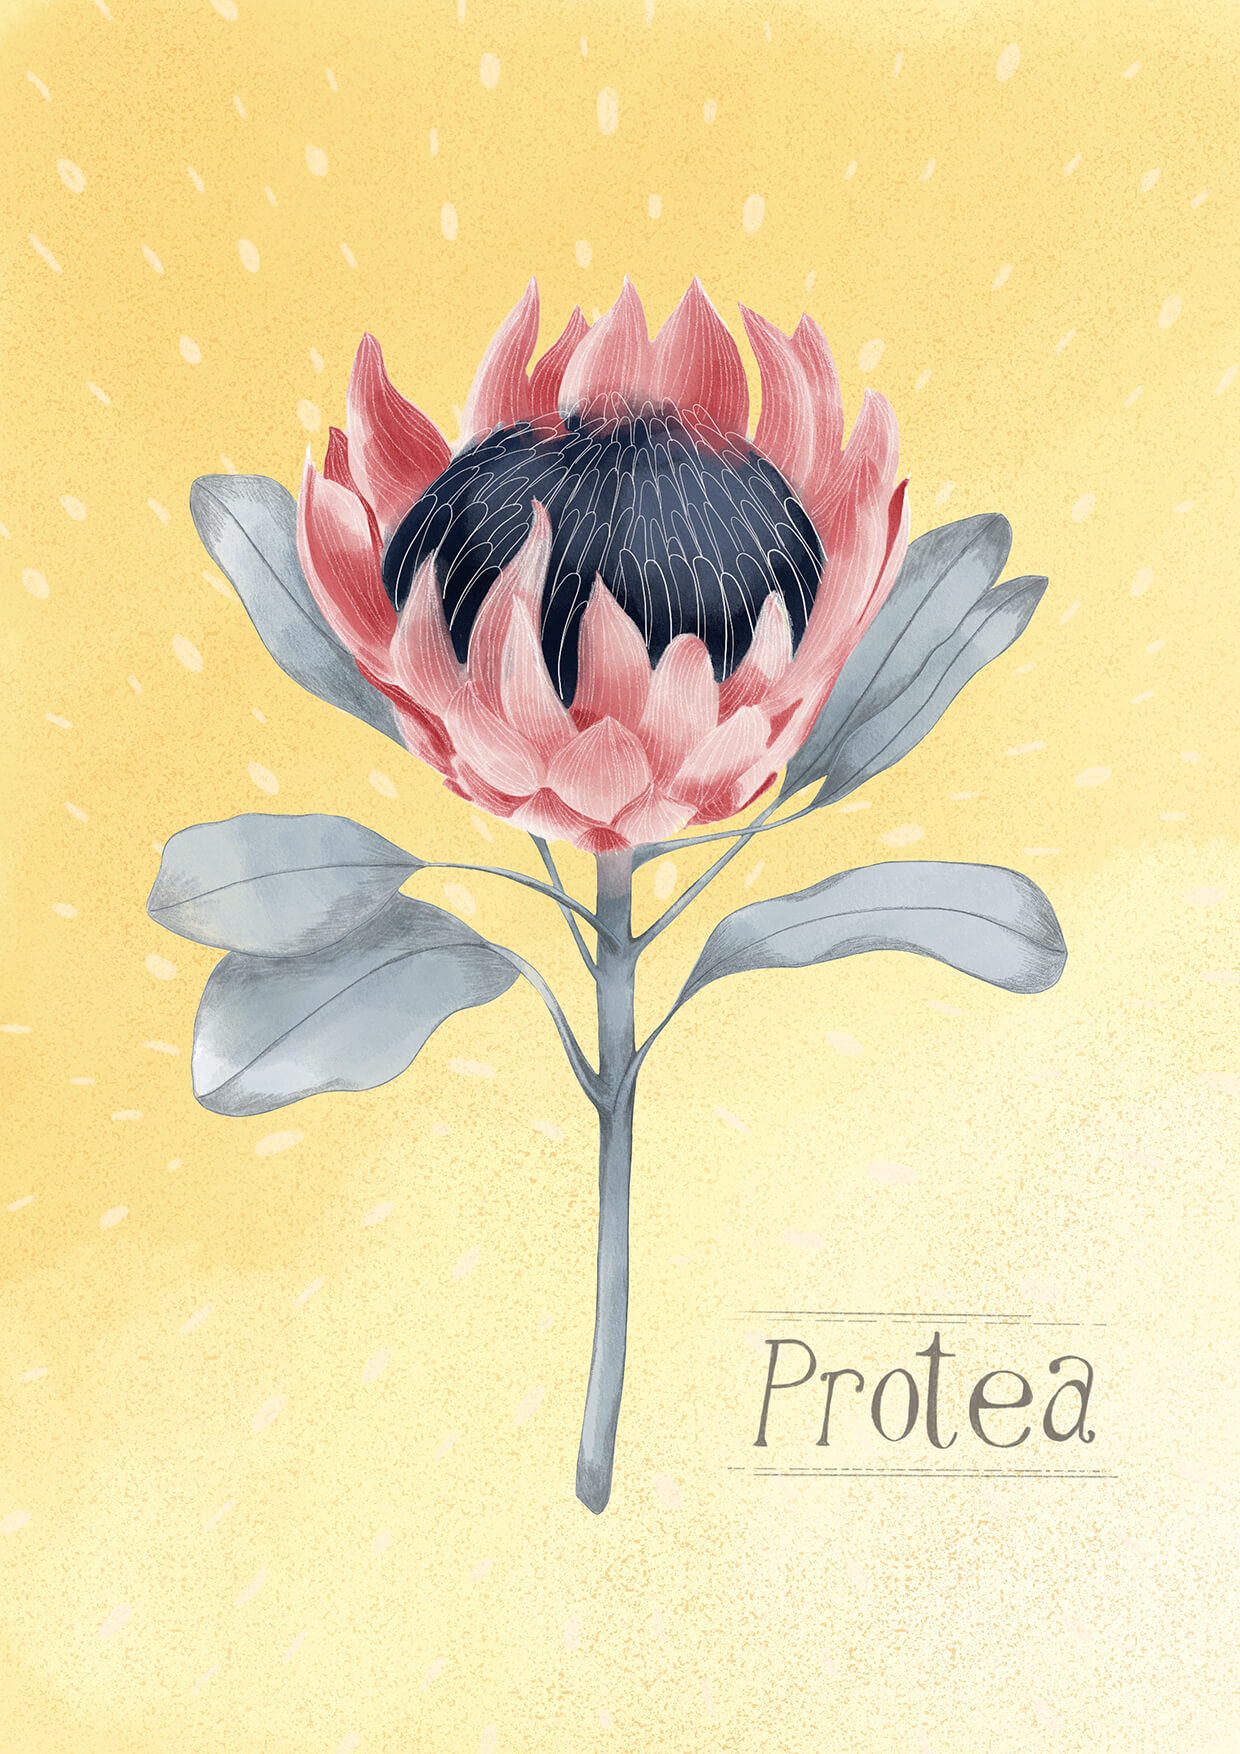 Protea Greeting Card, Erin Duncan Creative